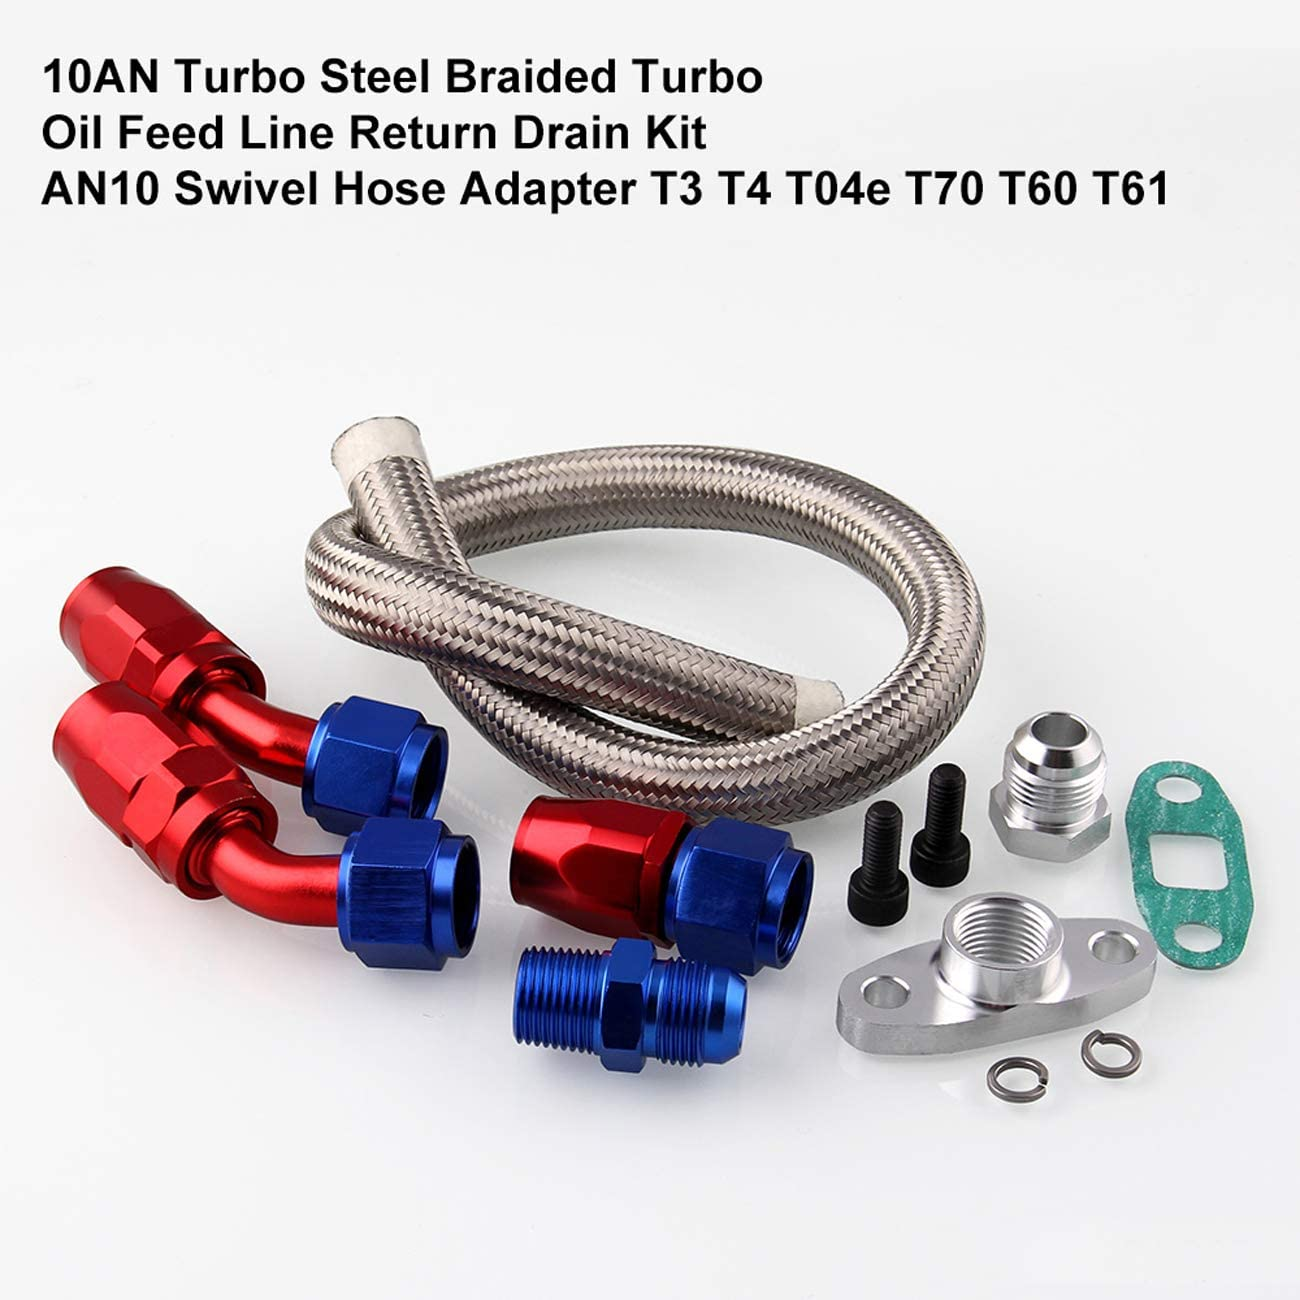 UAUS Turbo Charger Stainless Steel 40 1//8 Oil Feed+21 10an Return Drain Line Kit